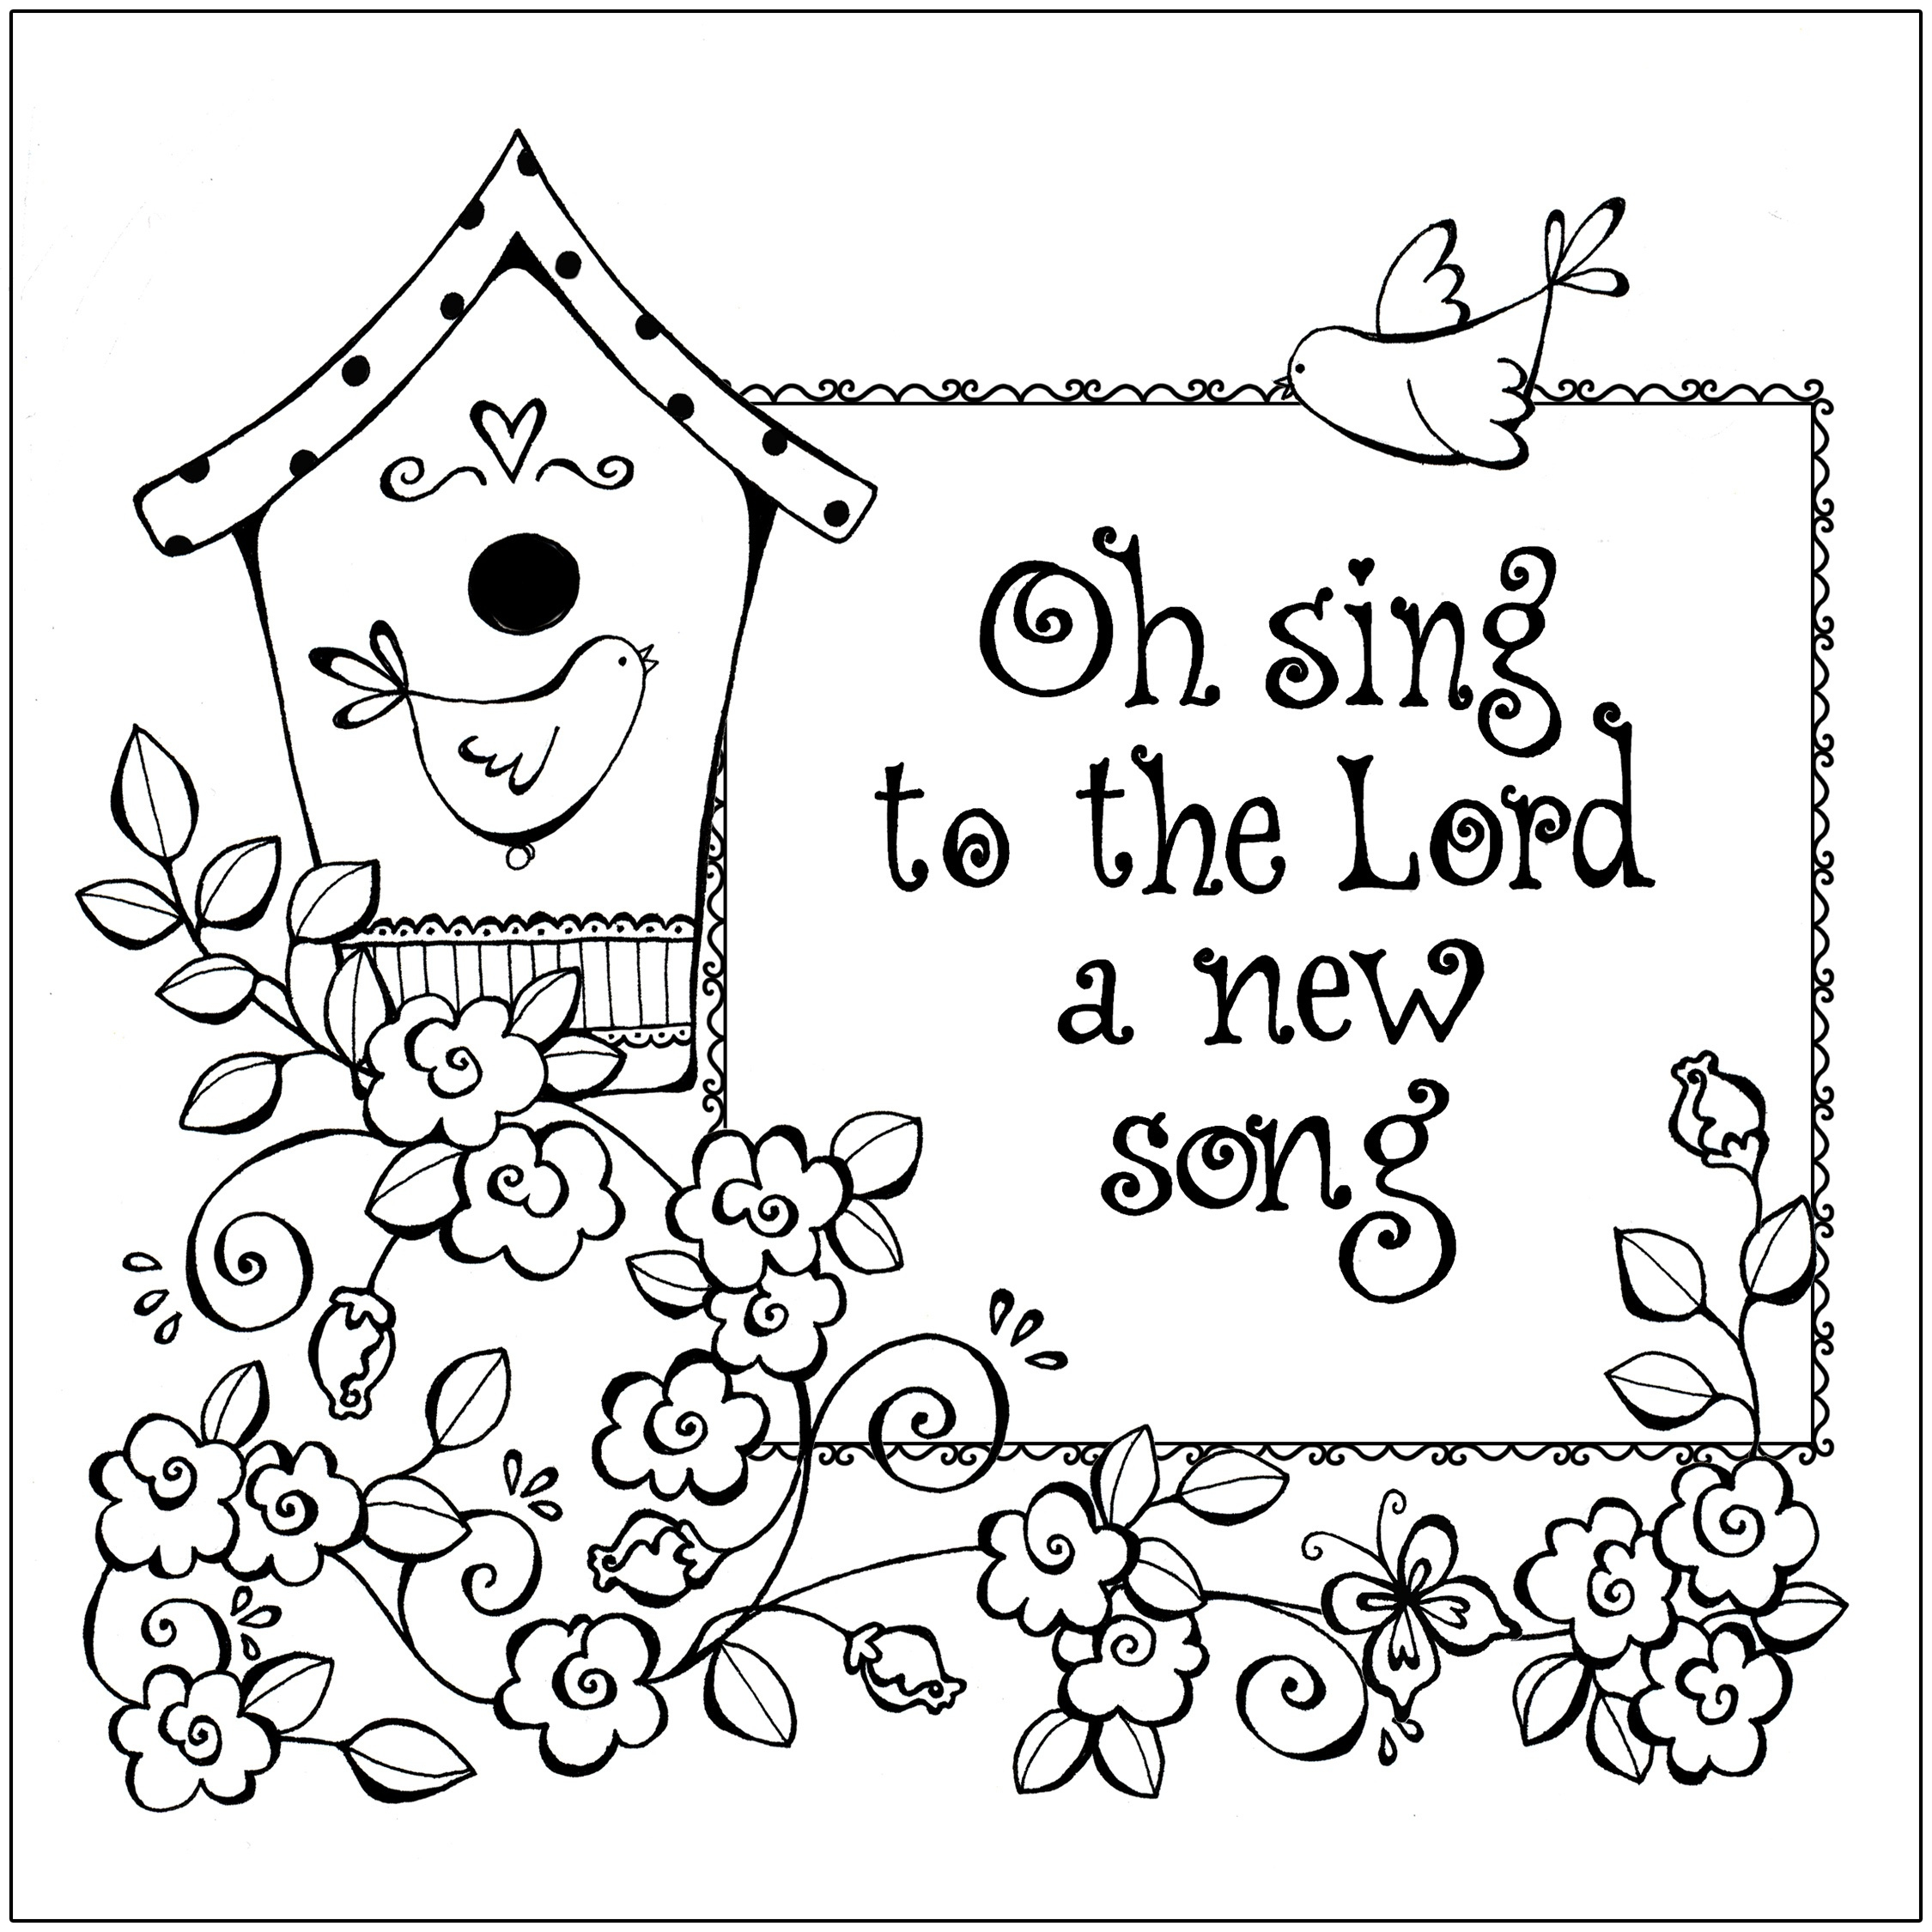 Coloring Pages : Printable Coloring Pages For Bible Schoolprintable - Free Printable Sunday School Coloring Sheets